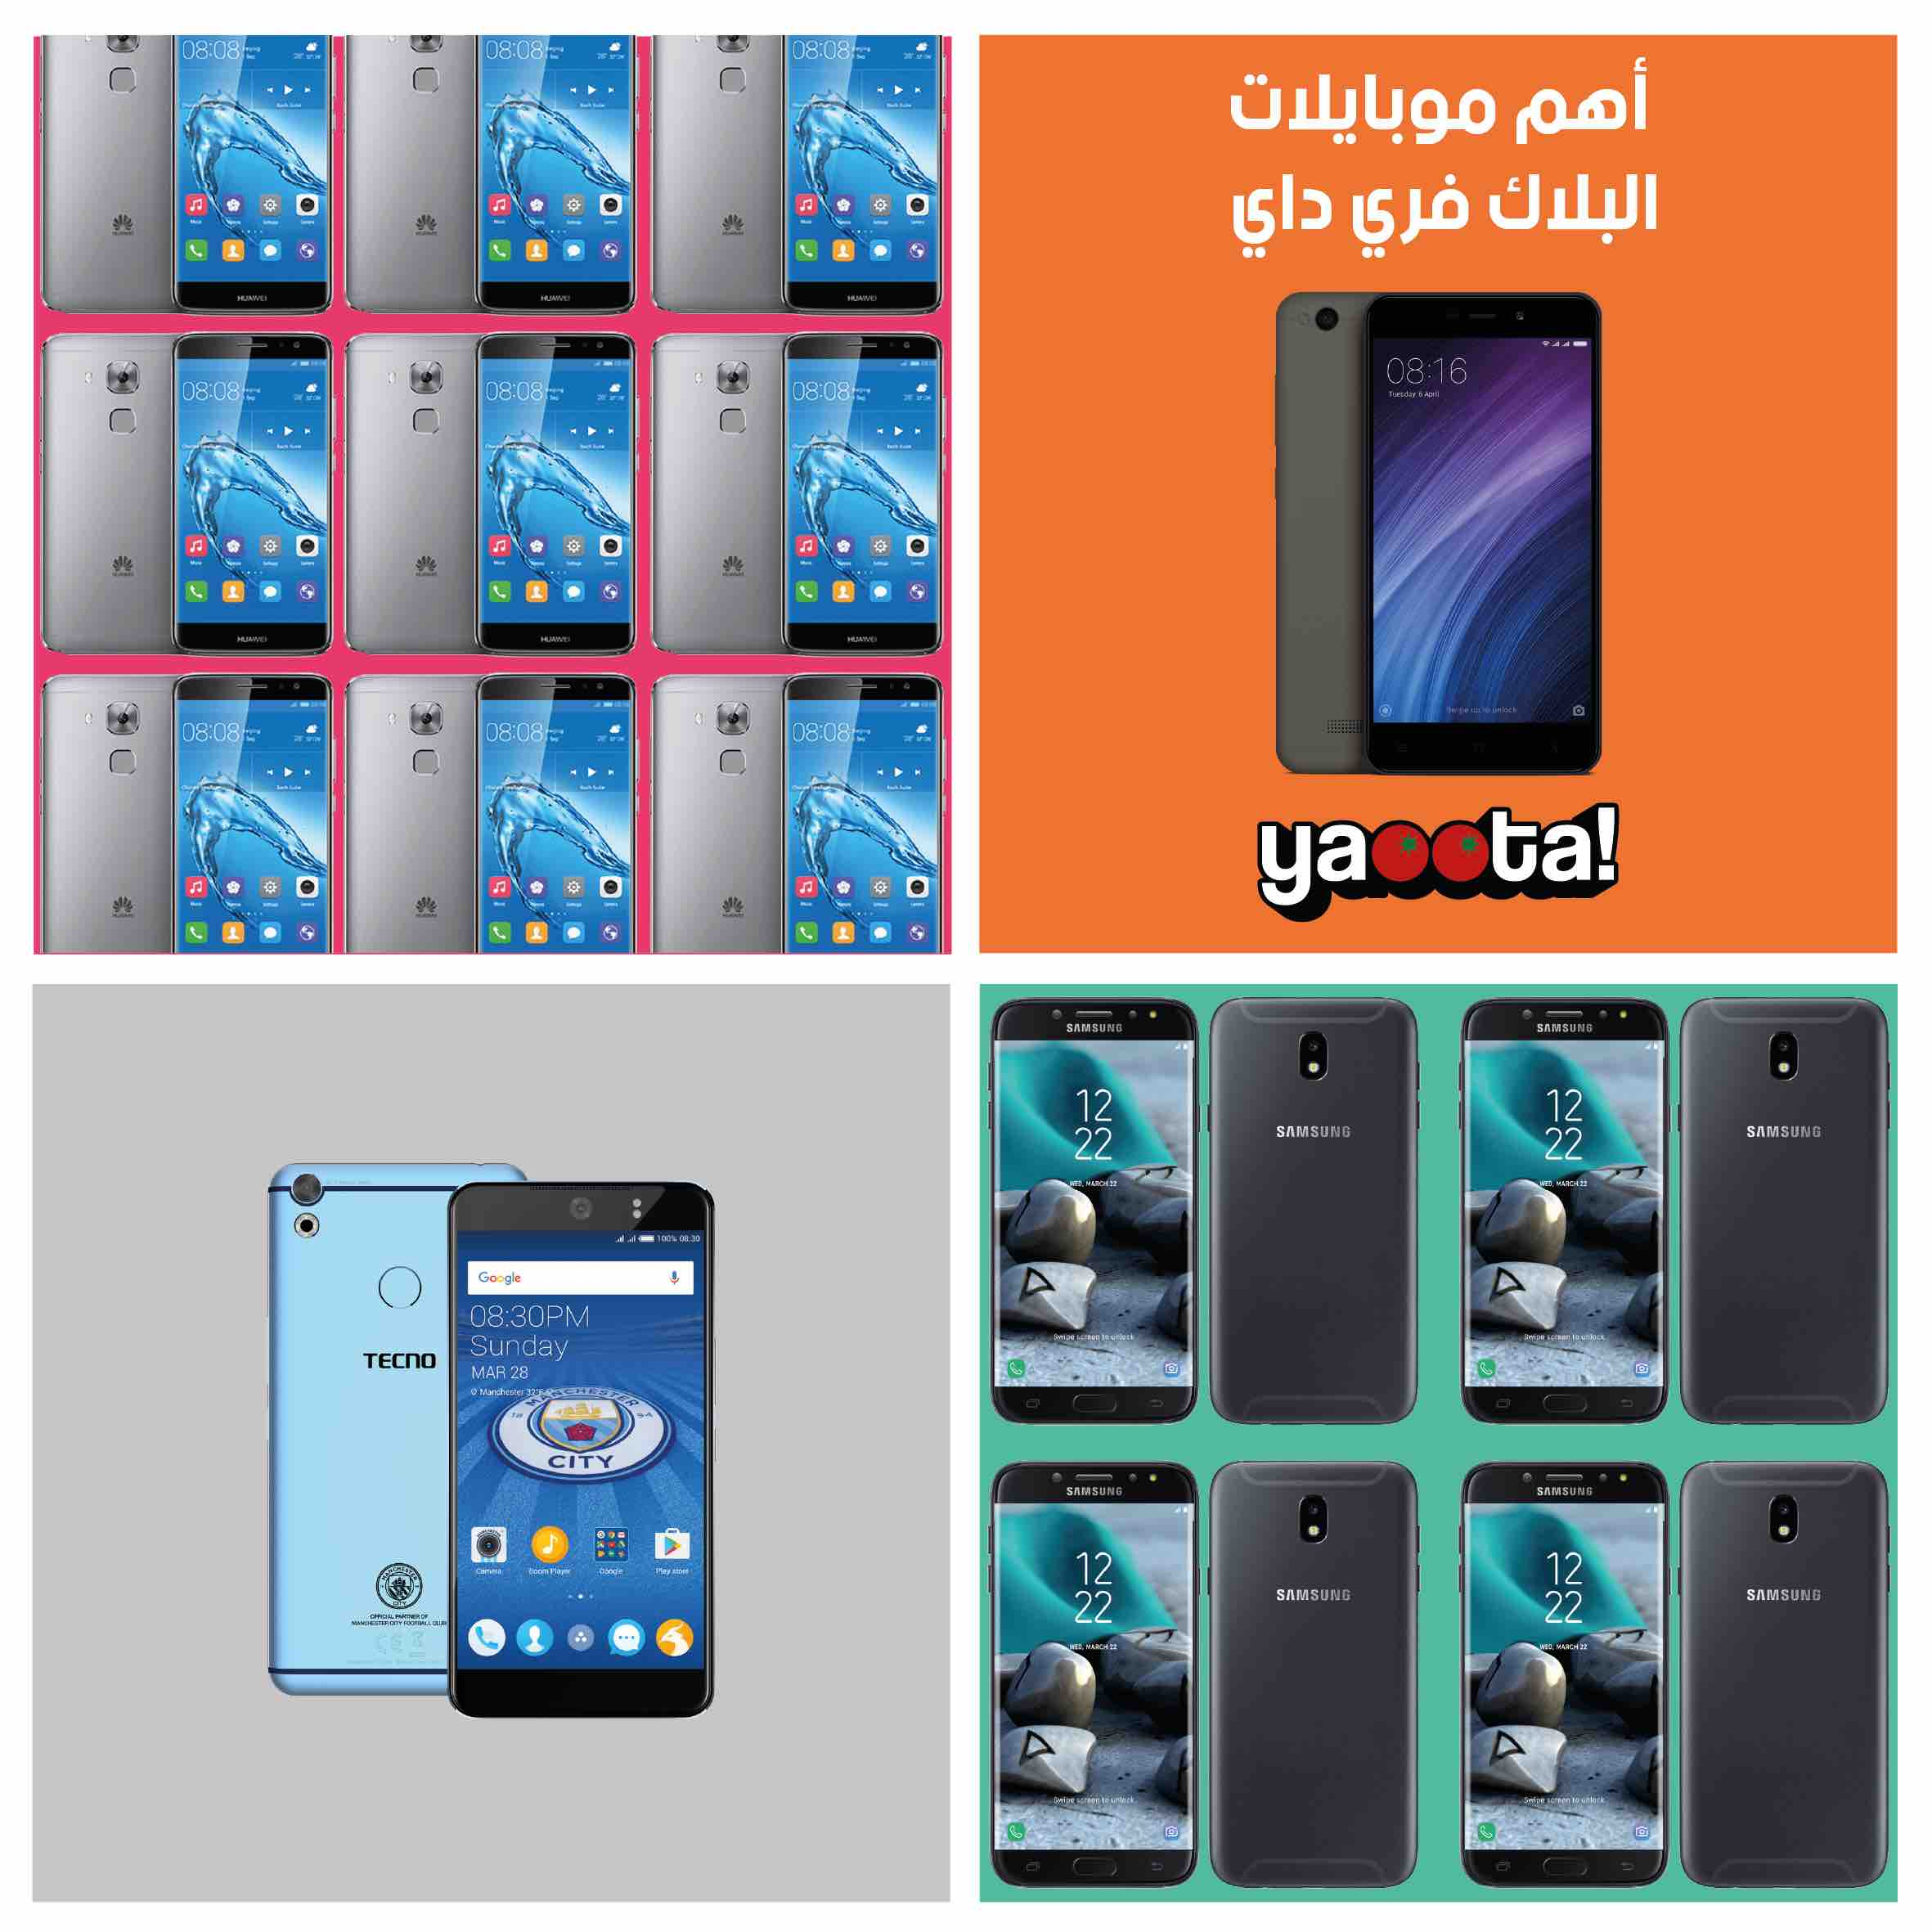 Top 4 Mobile Phones Offers during the Black Friday